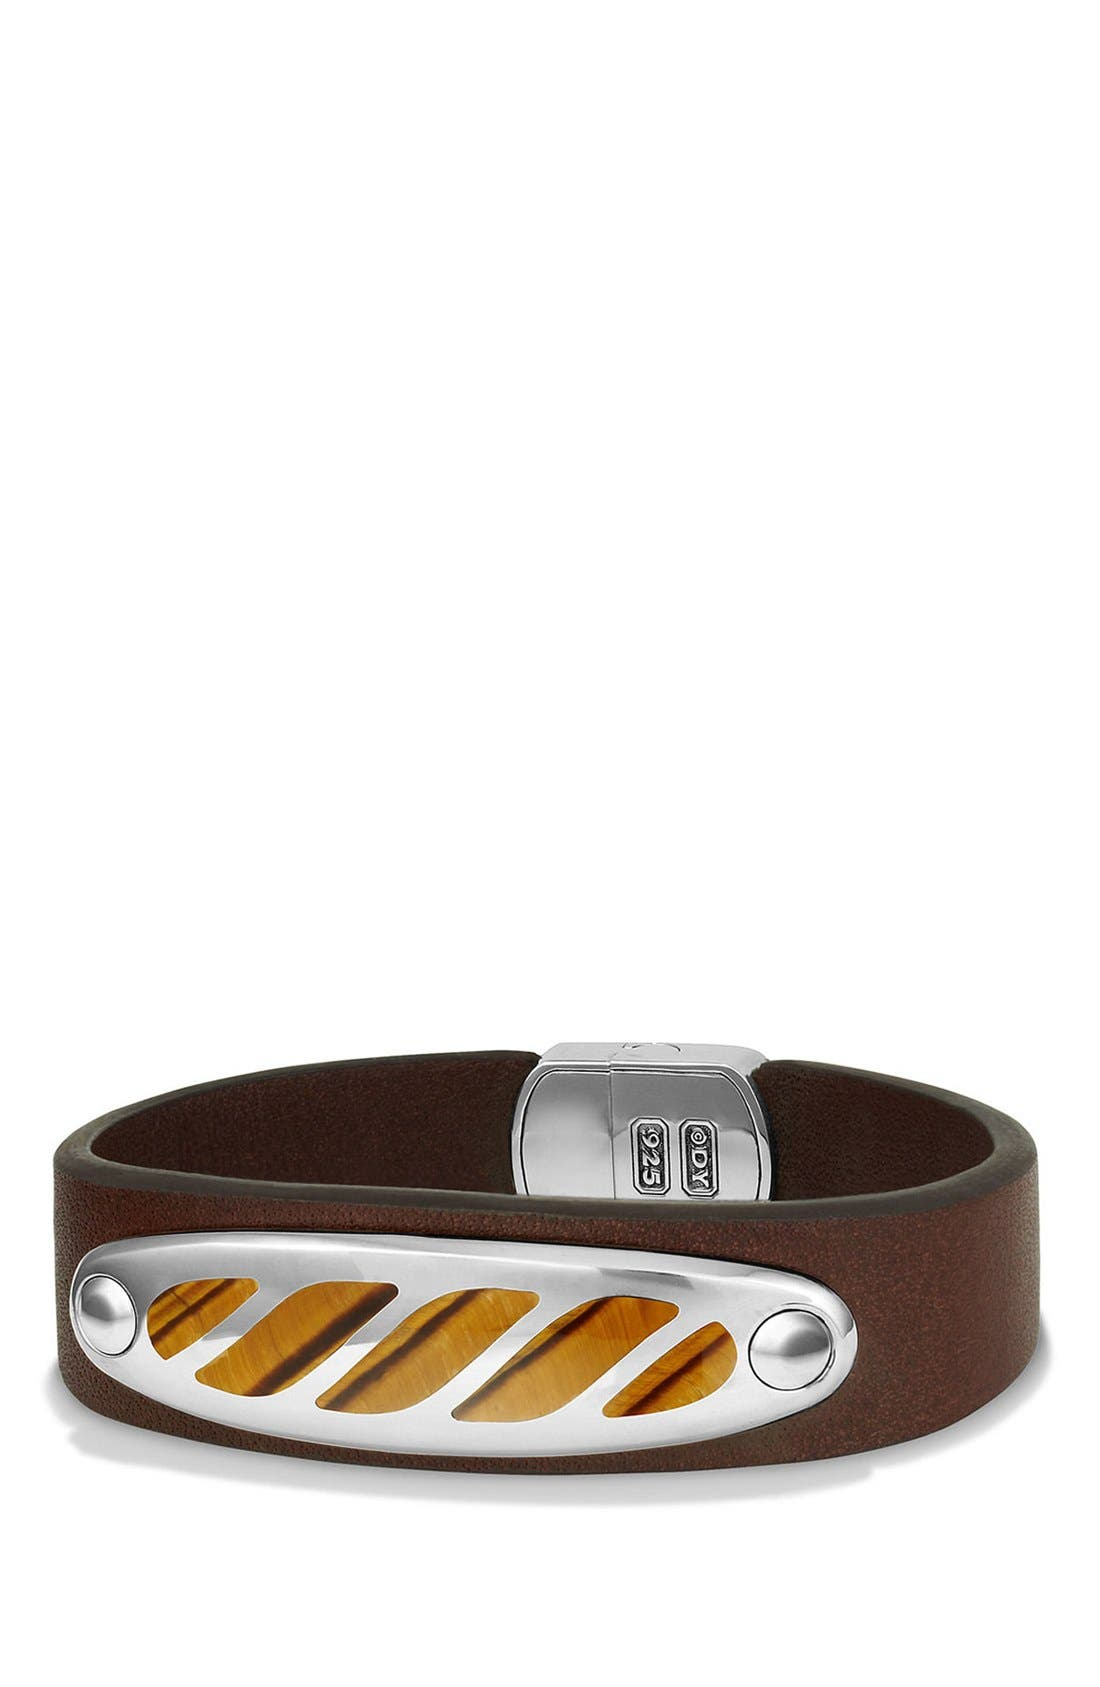 Graphic Cable Leather ID Bracelet,                         Main,                         color, Silver